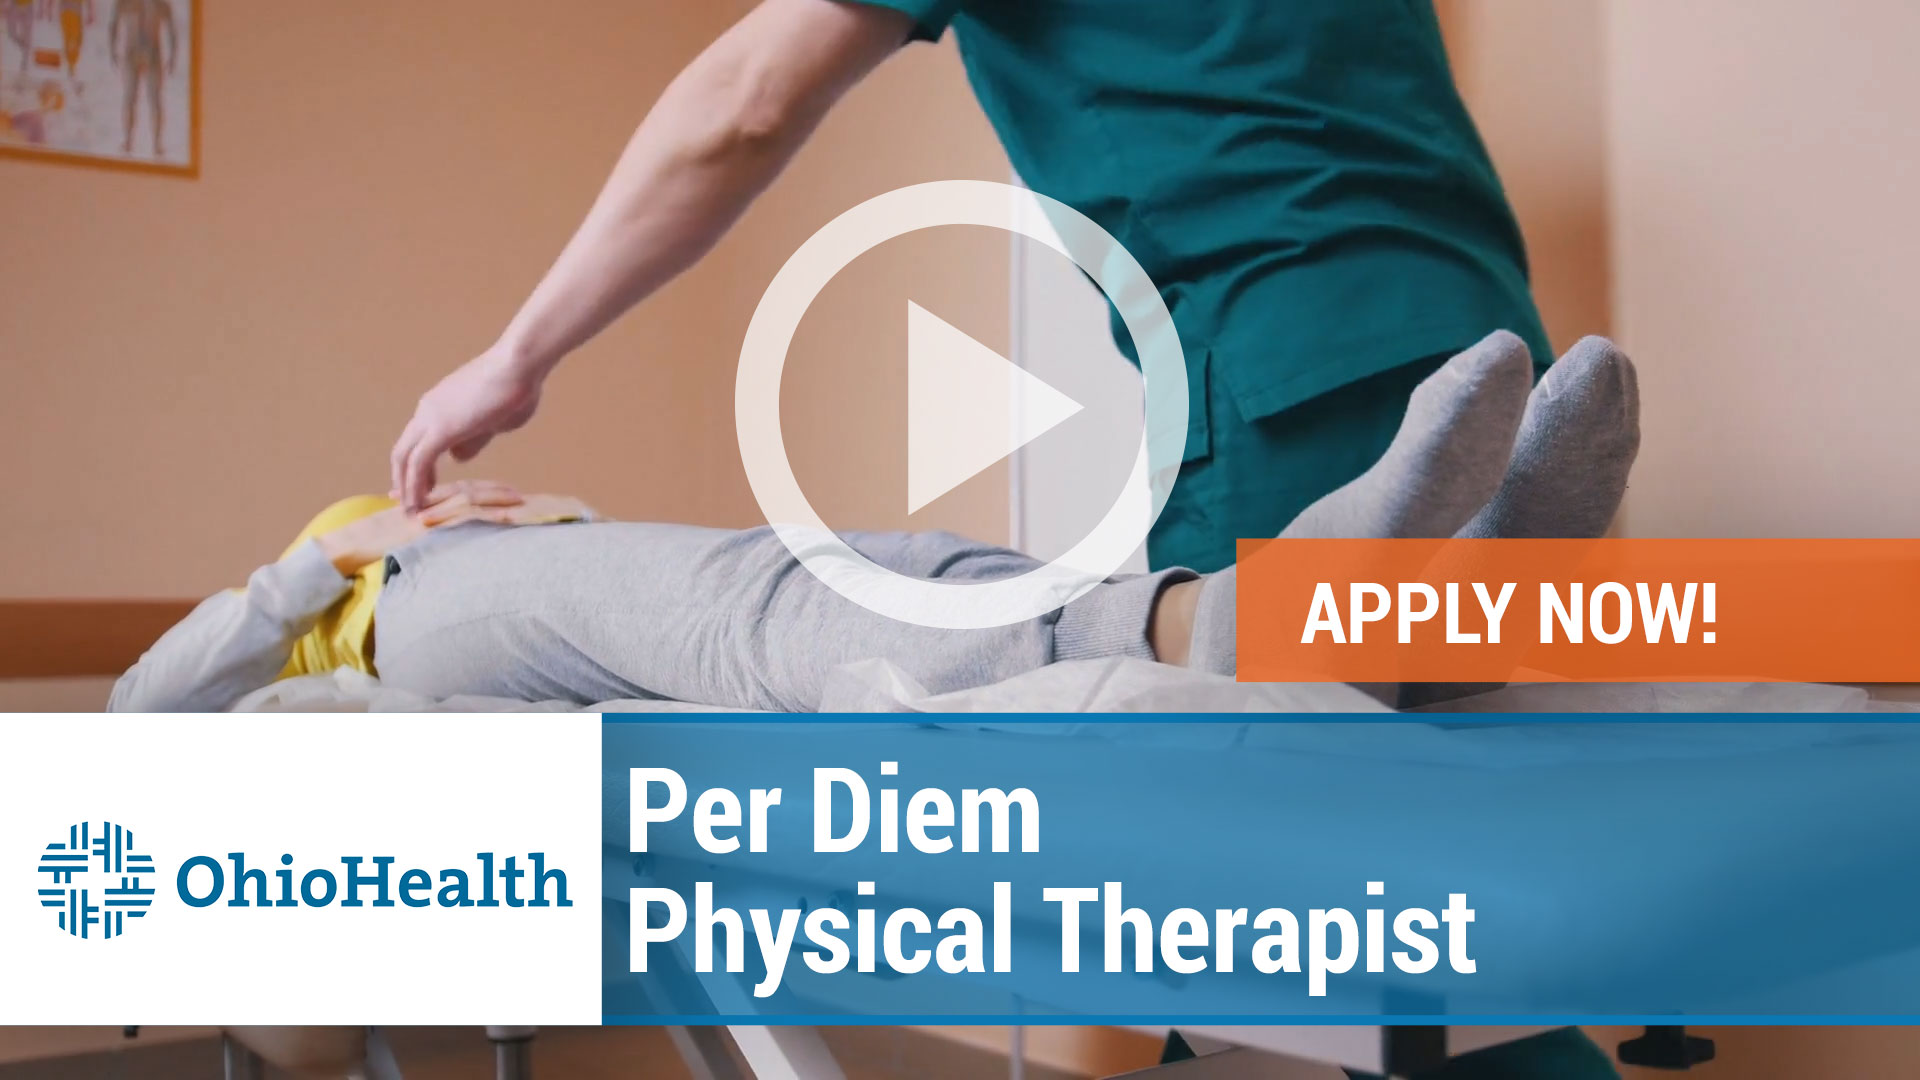 Watch our careers video for available job opening Per Diem Physical Therapist in Columbus, Ohio